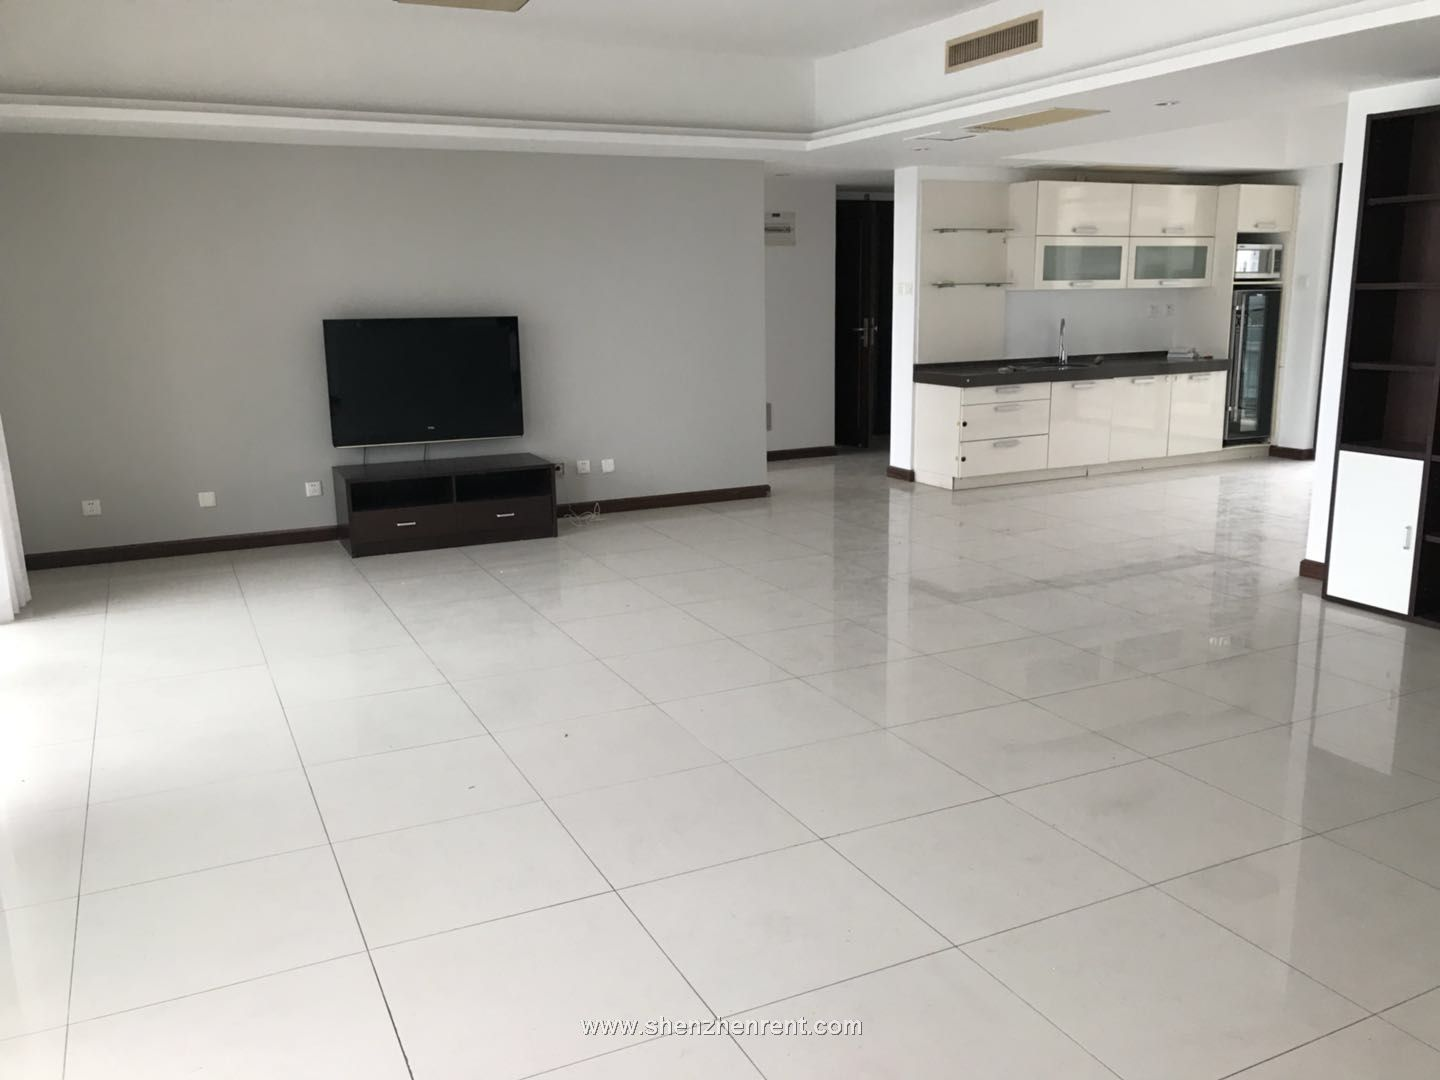 Empty 4 bedrooms apartment in shekou rose garden 3 for rent